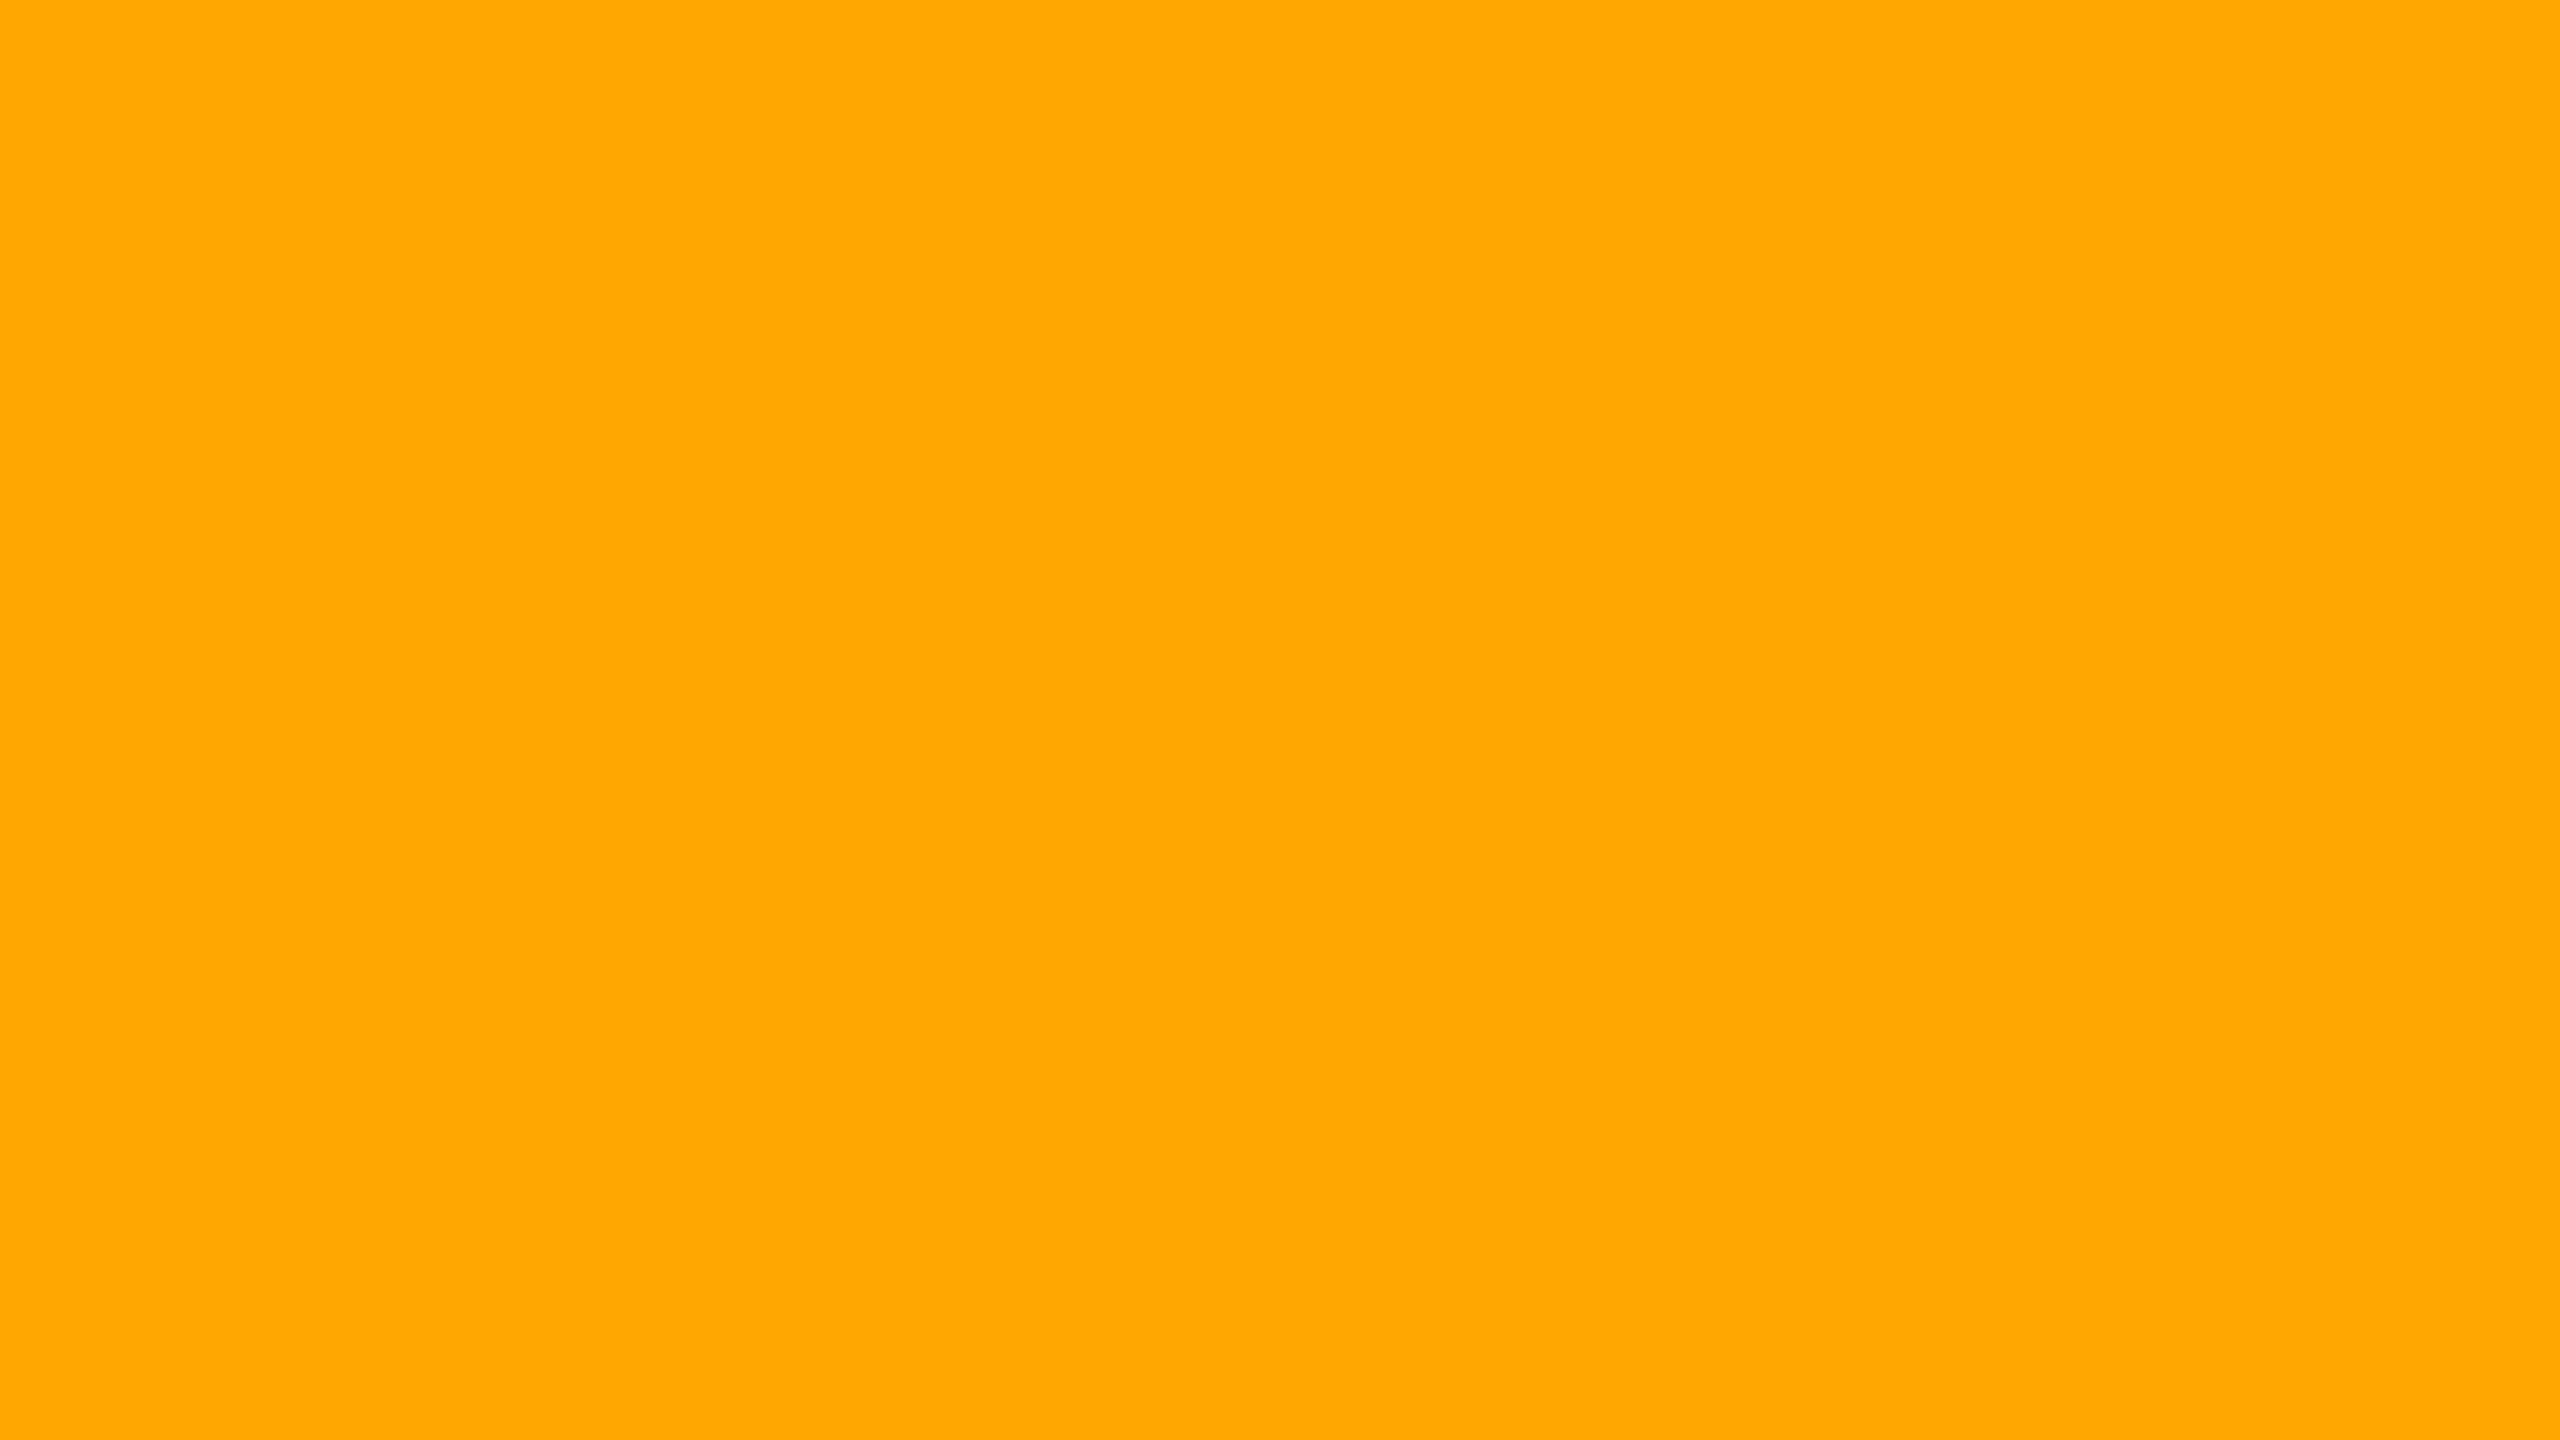 3d Colour Wallpaper Free Download 2560x1440 Chrome Yellow Solid Color Background